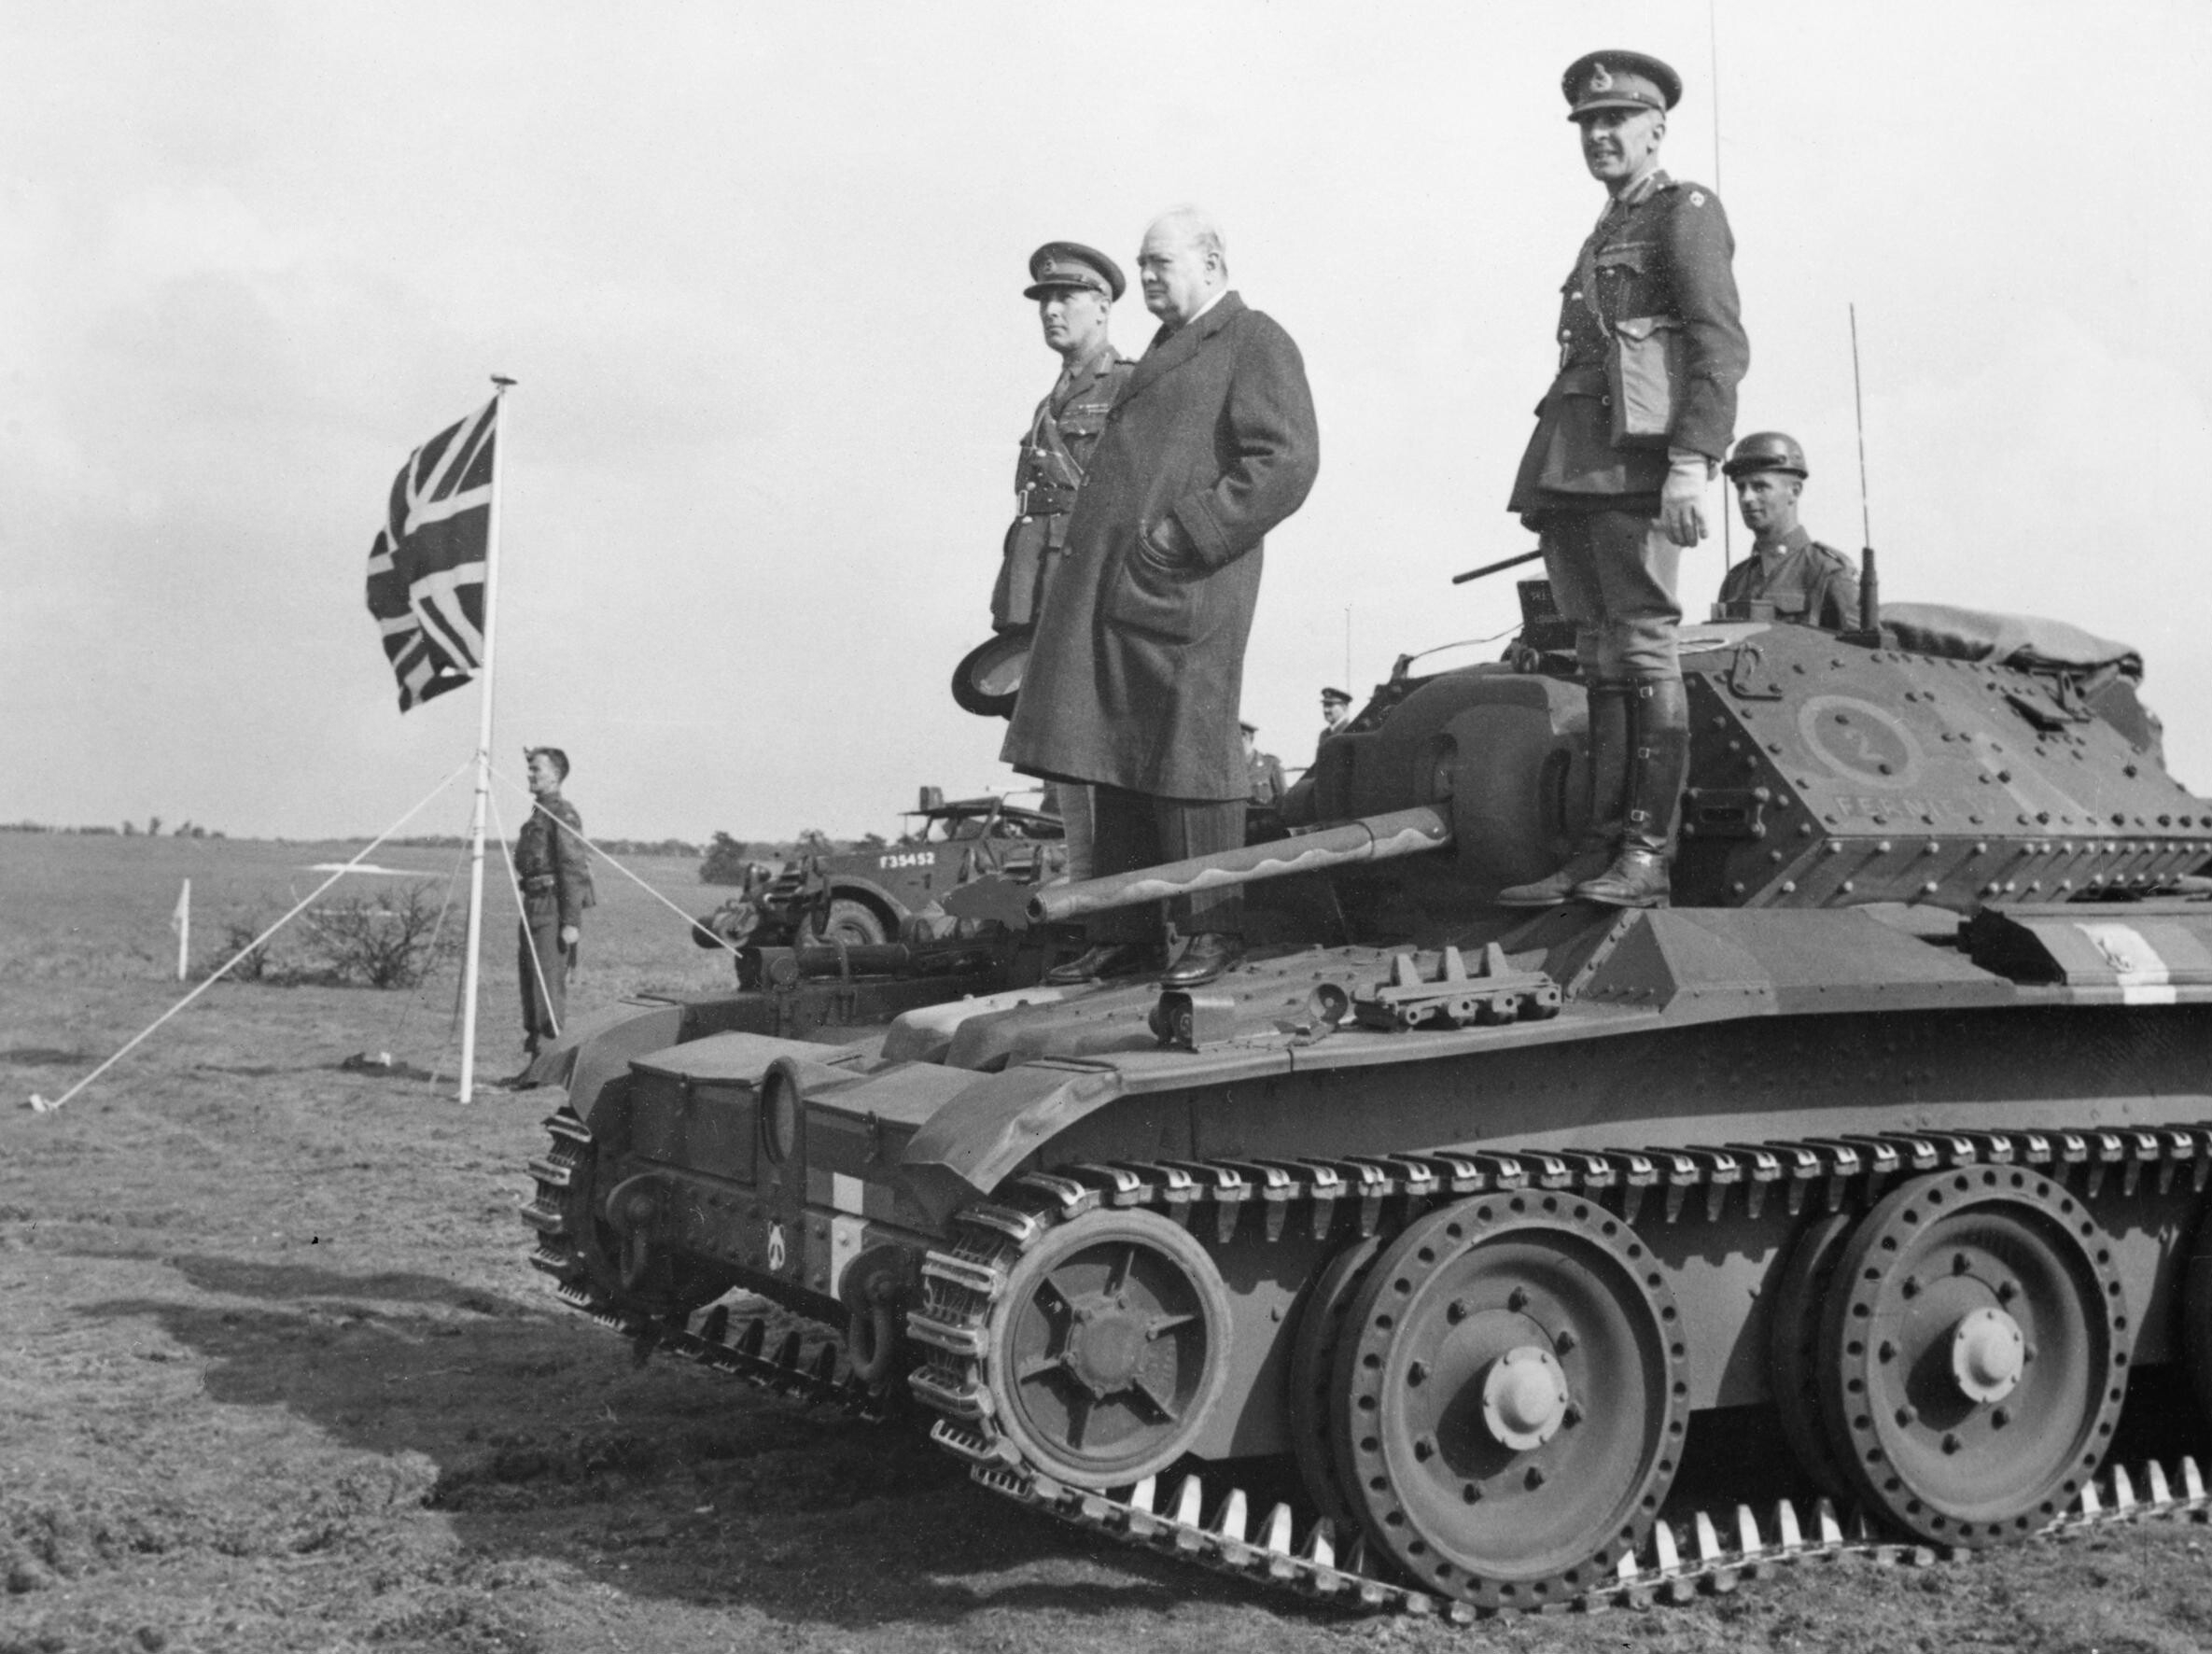 Winston_Churchill_stands_on_a_Covenanter_tank_of_4th-7th_Royal_Dragoon_Guards%2C_to_take_the_salute_at_an_inspection_of_9th_Armoured_Division_near_Newmarket%2C_Suffolk%2C_16_May_1942._H19765.jpg